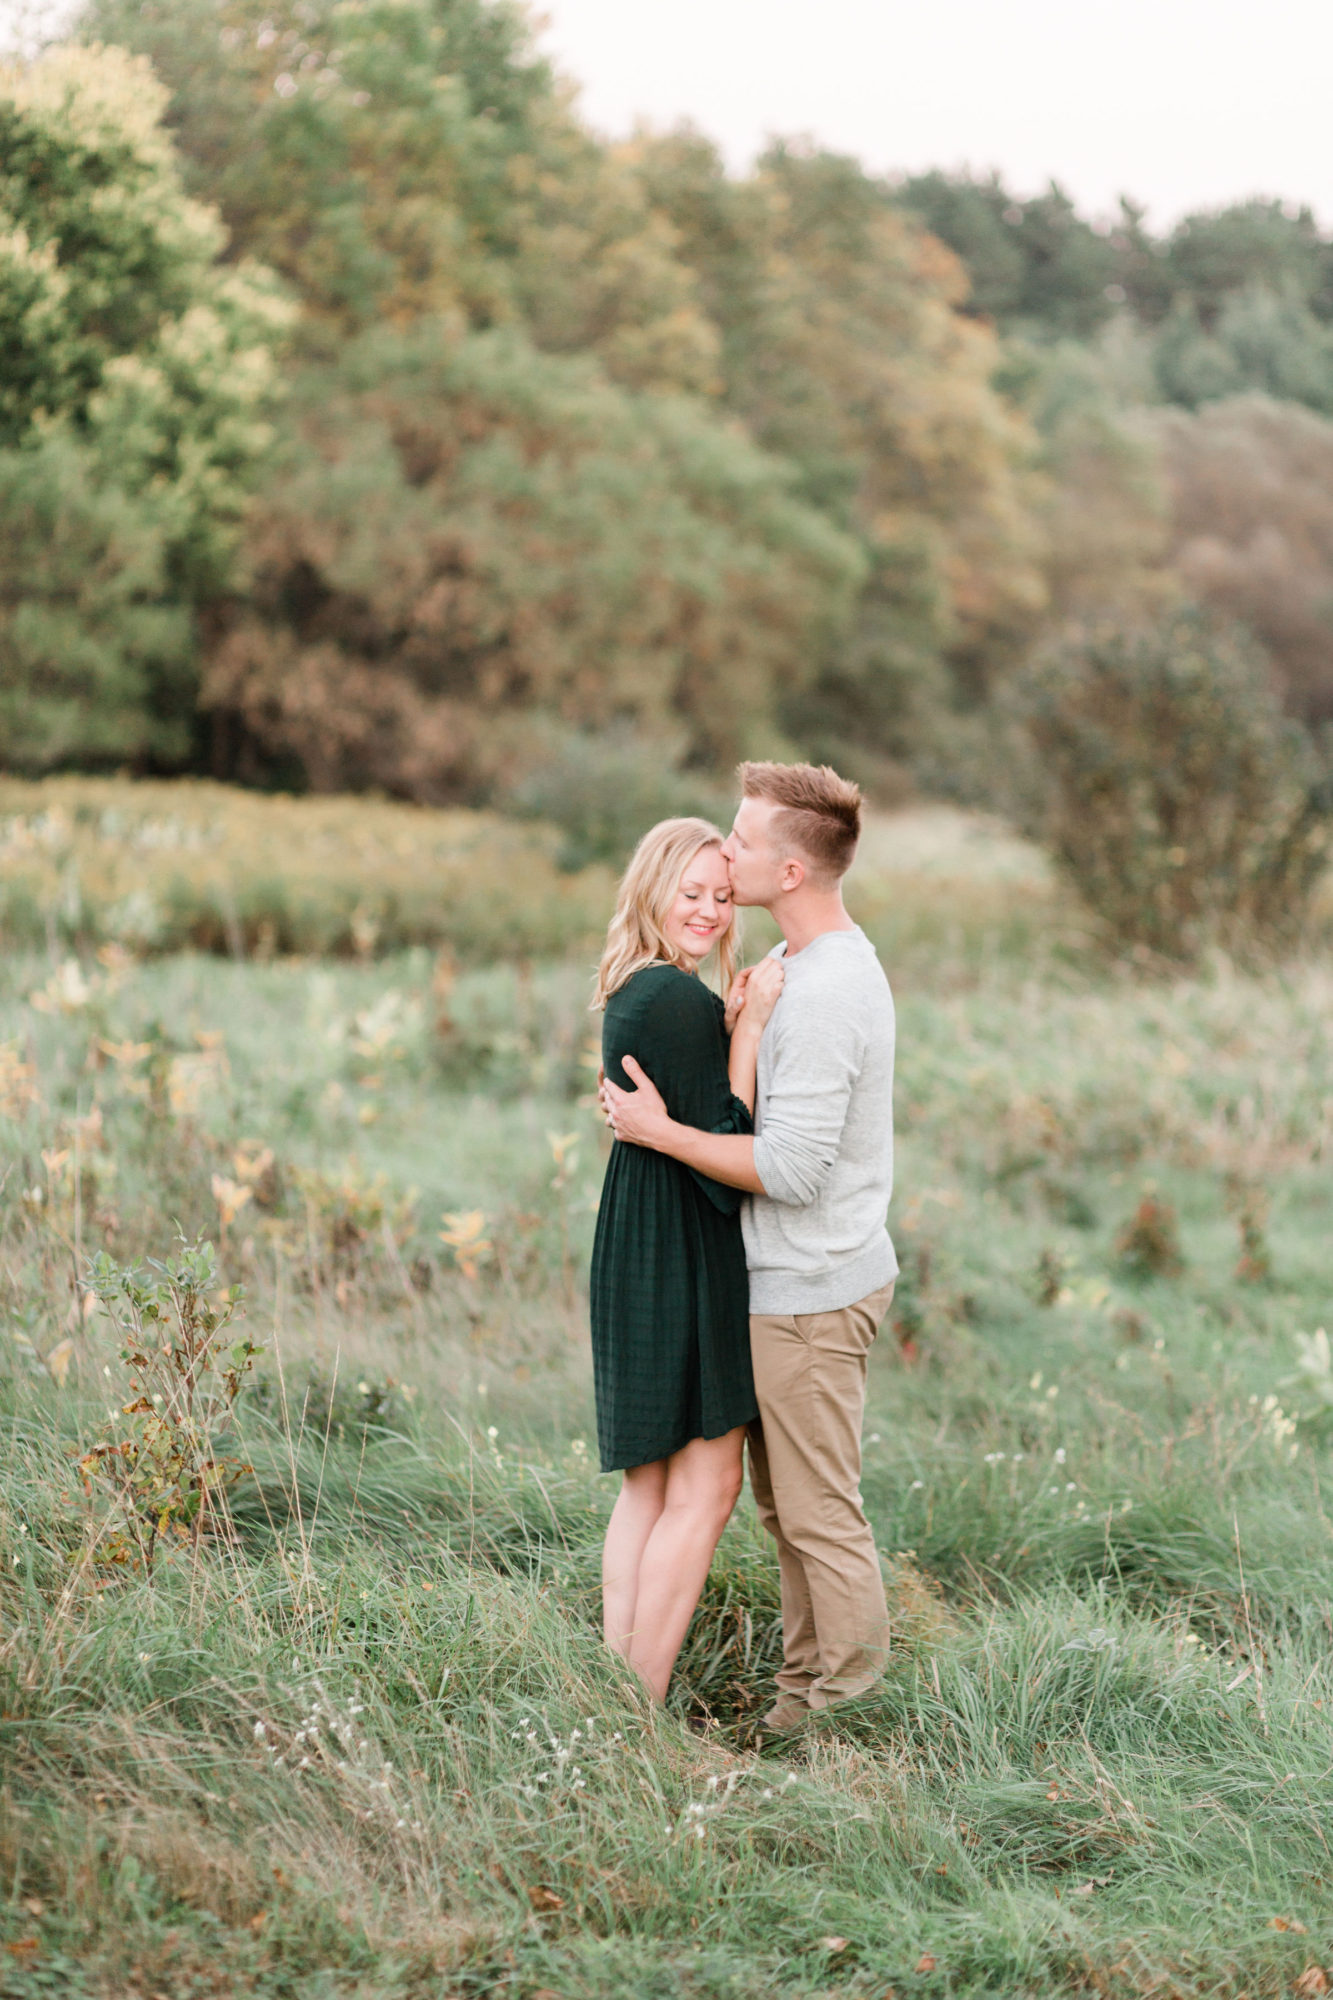 Janimal Photography - Midwest Wedding Photography & Engagement photography